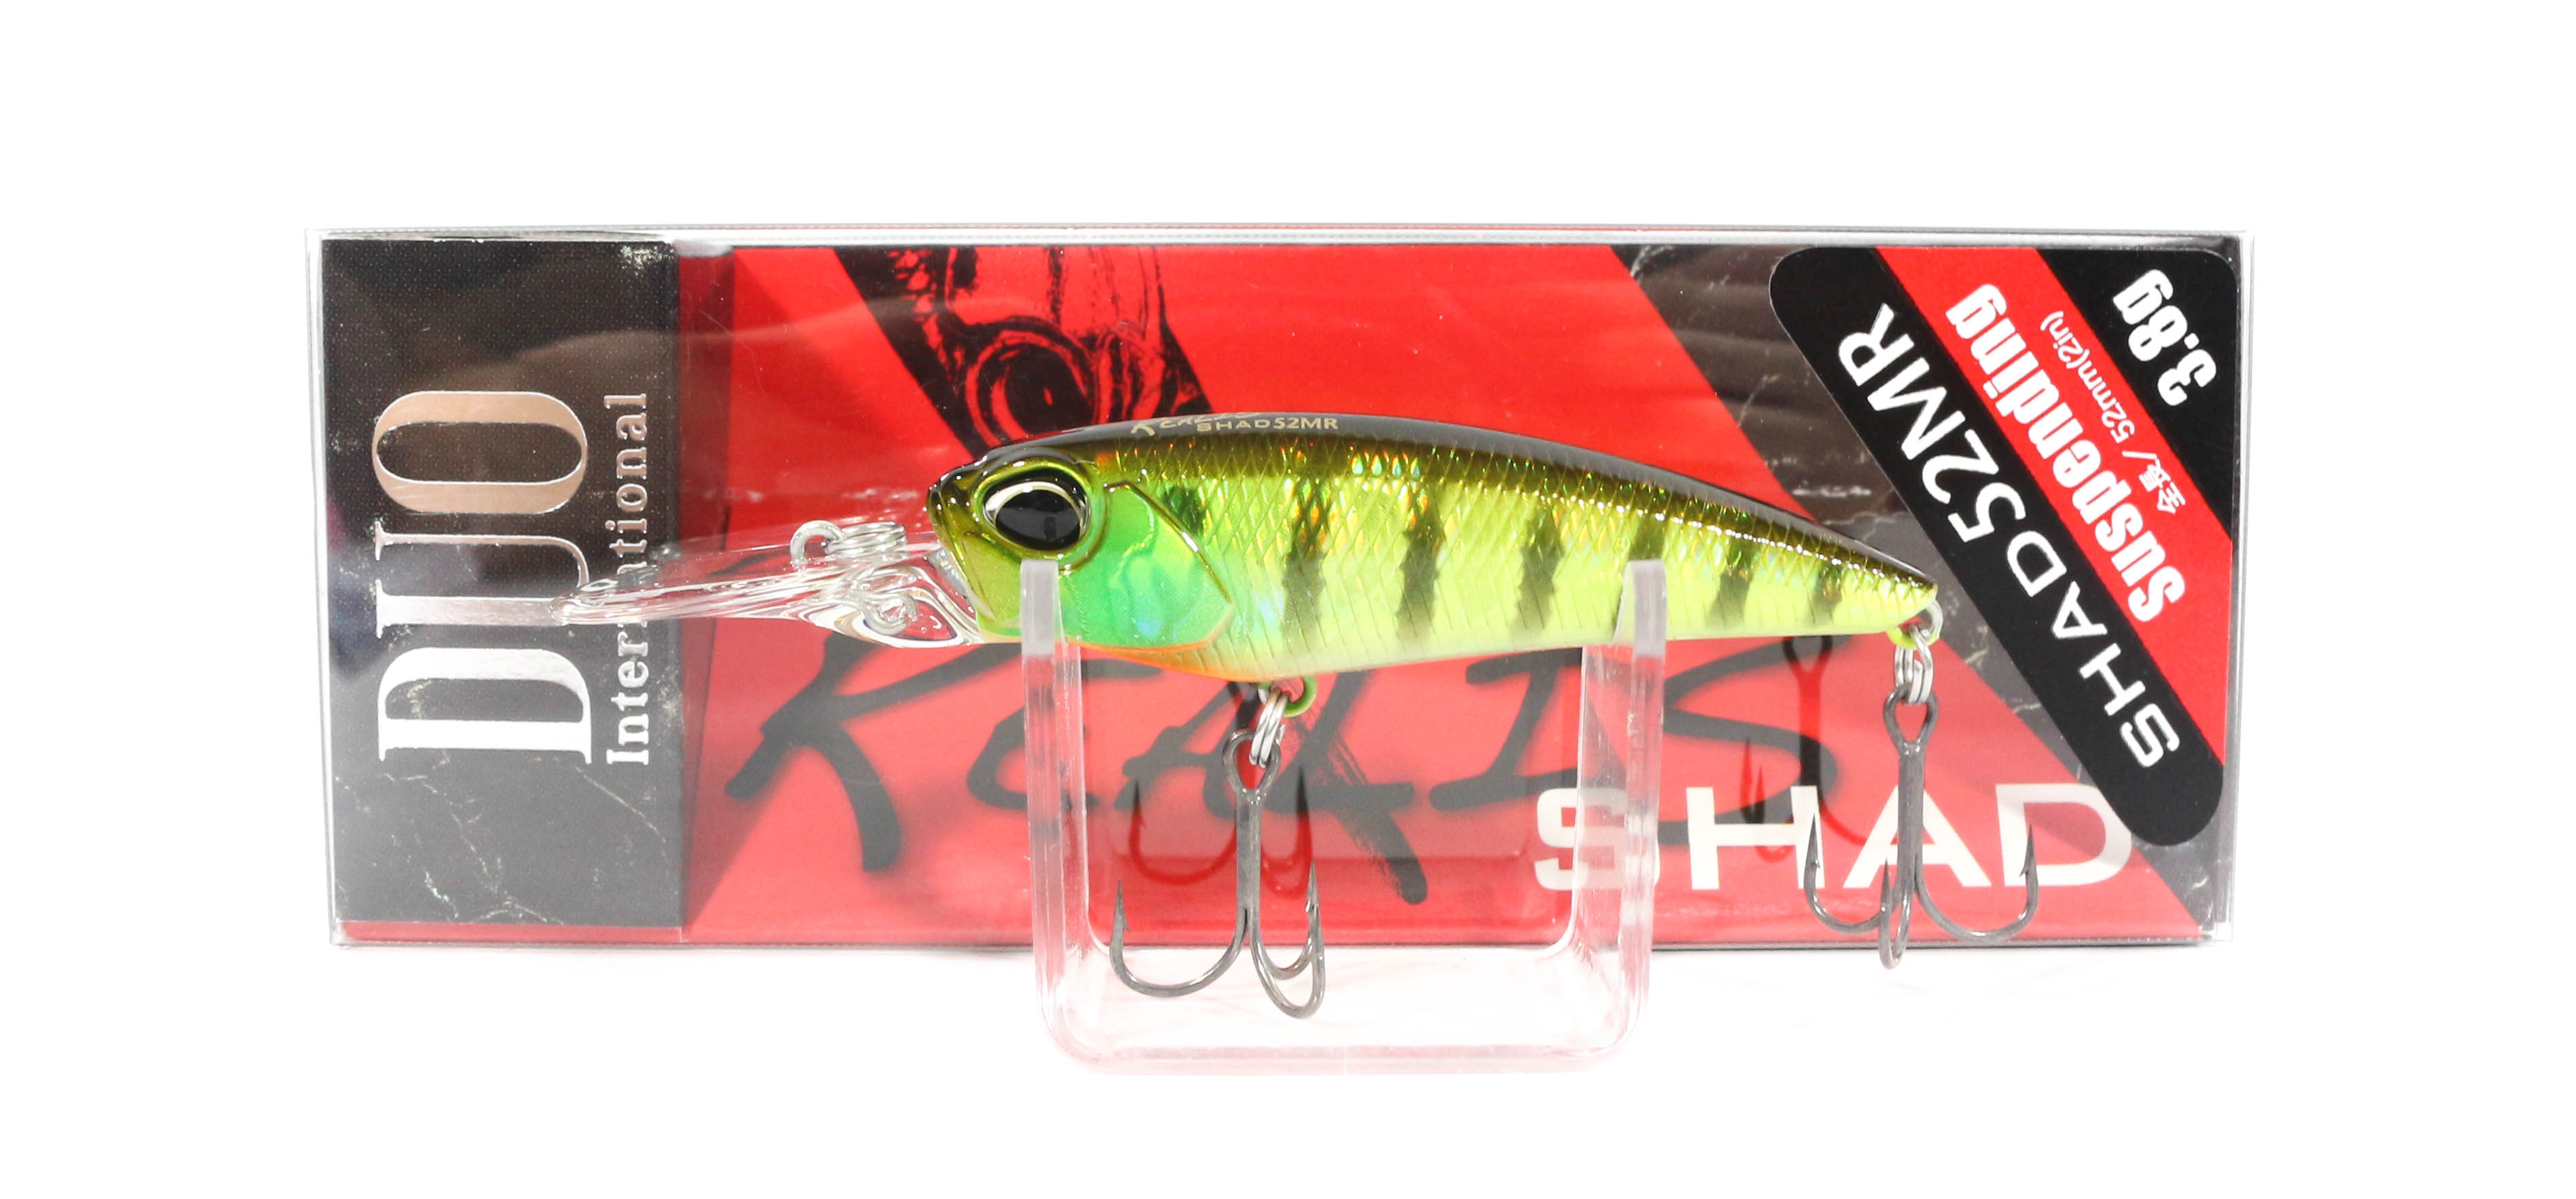 Duo Realis Shad 52 MR Suspend Lure AJA3055 (4517)